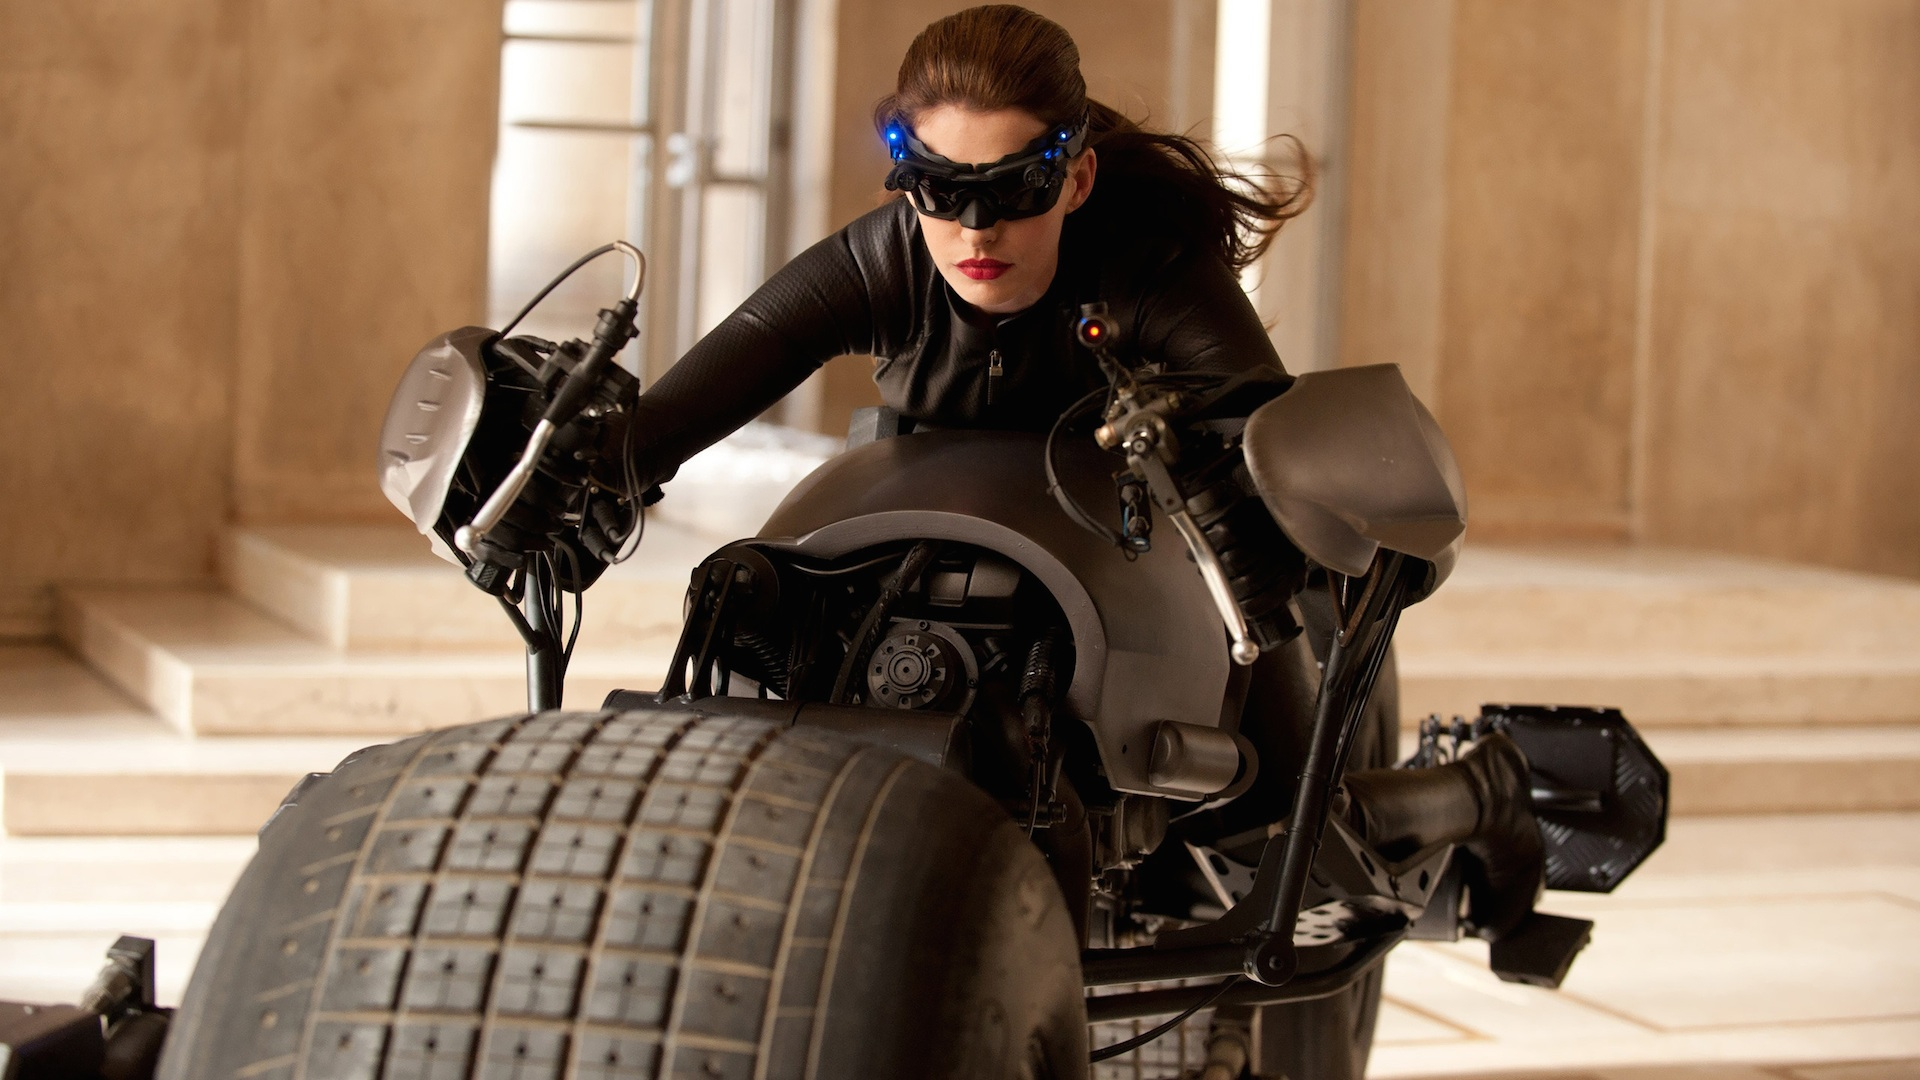 Anne Hathaway - Catwoman Wallpaper - 9